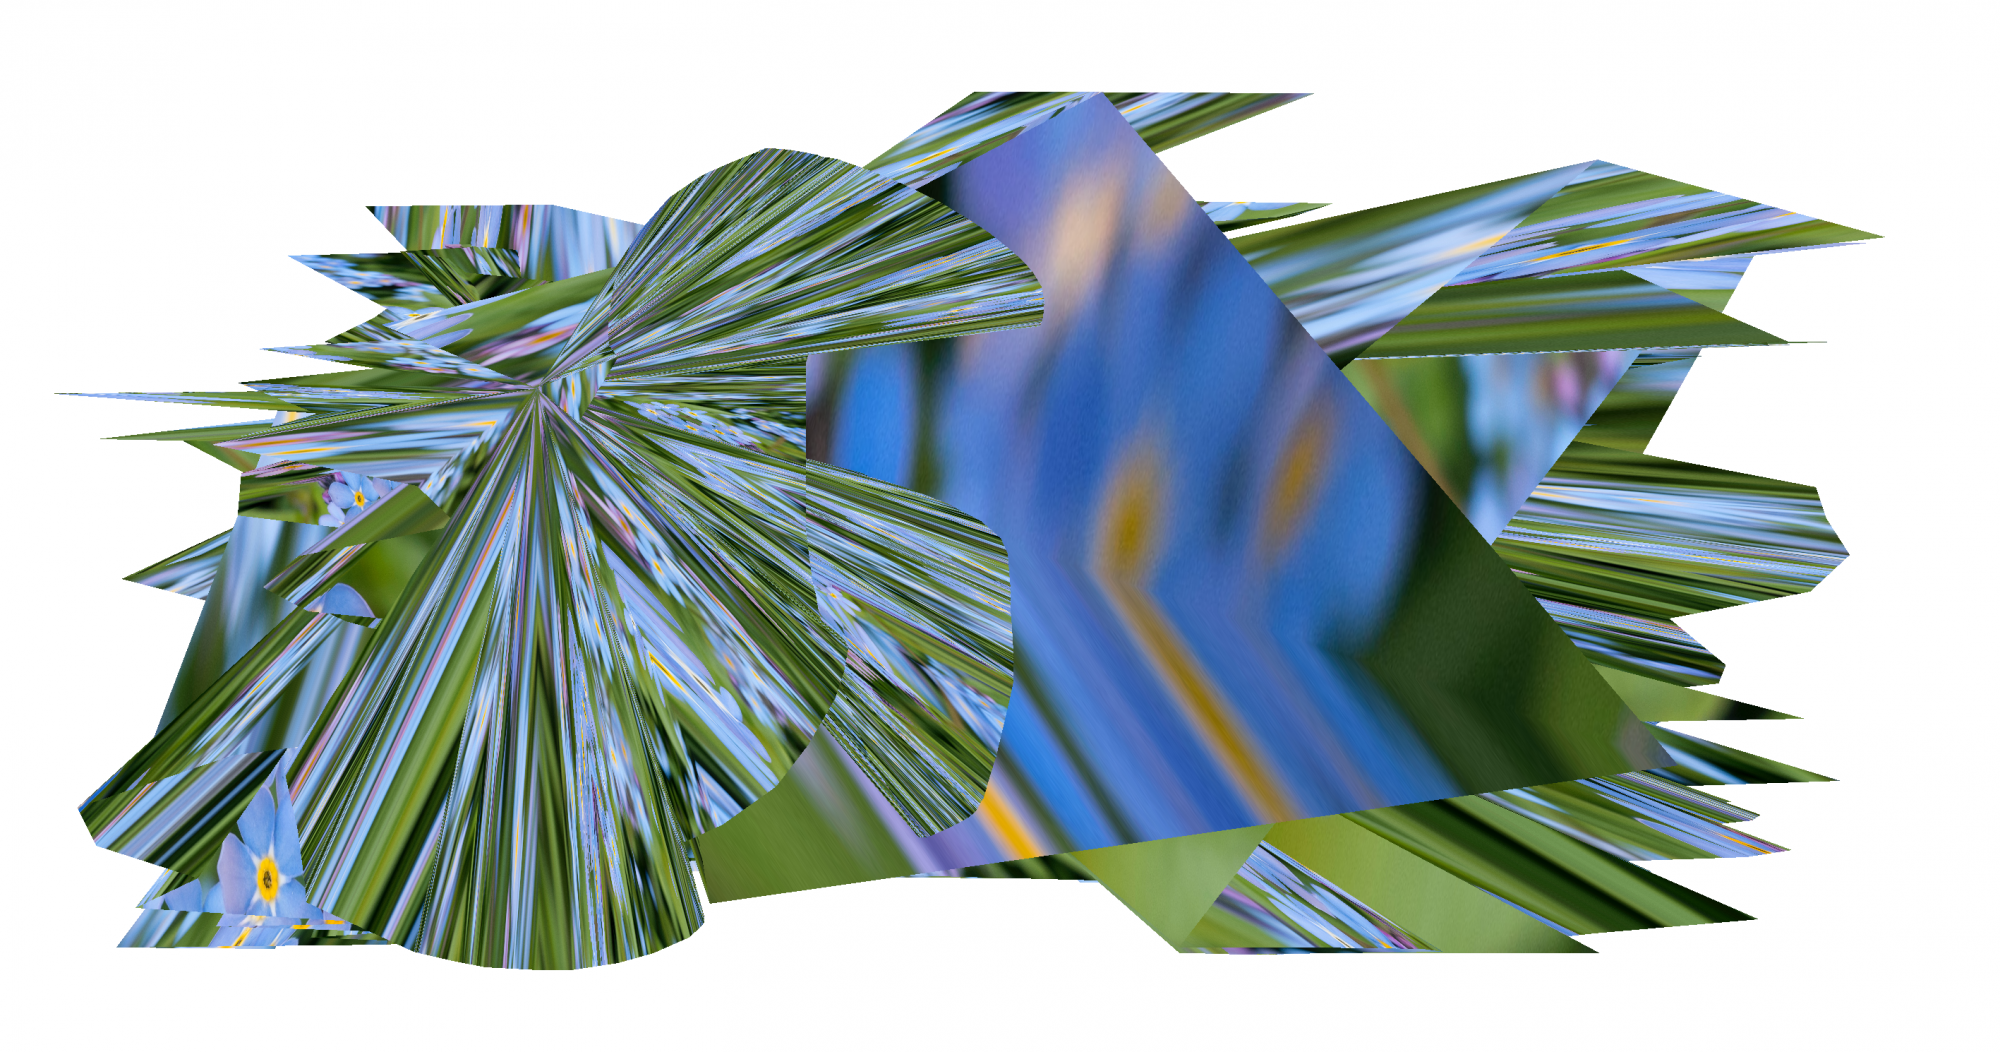 """Digit-Windland /  """"Digit-Windland"""" is a visual research by Yun Kuo and it is inspired by how plants move with wind."""